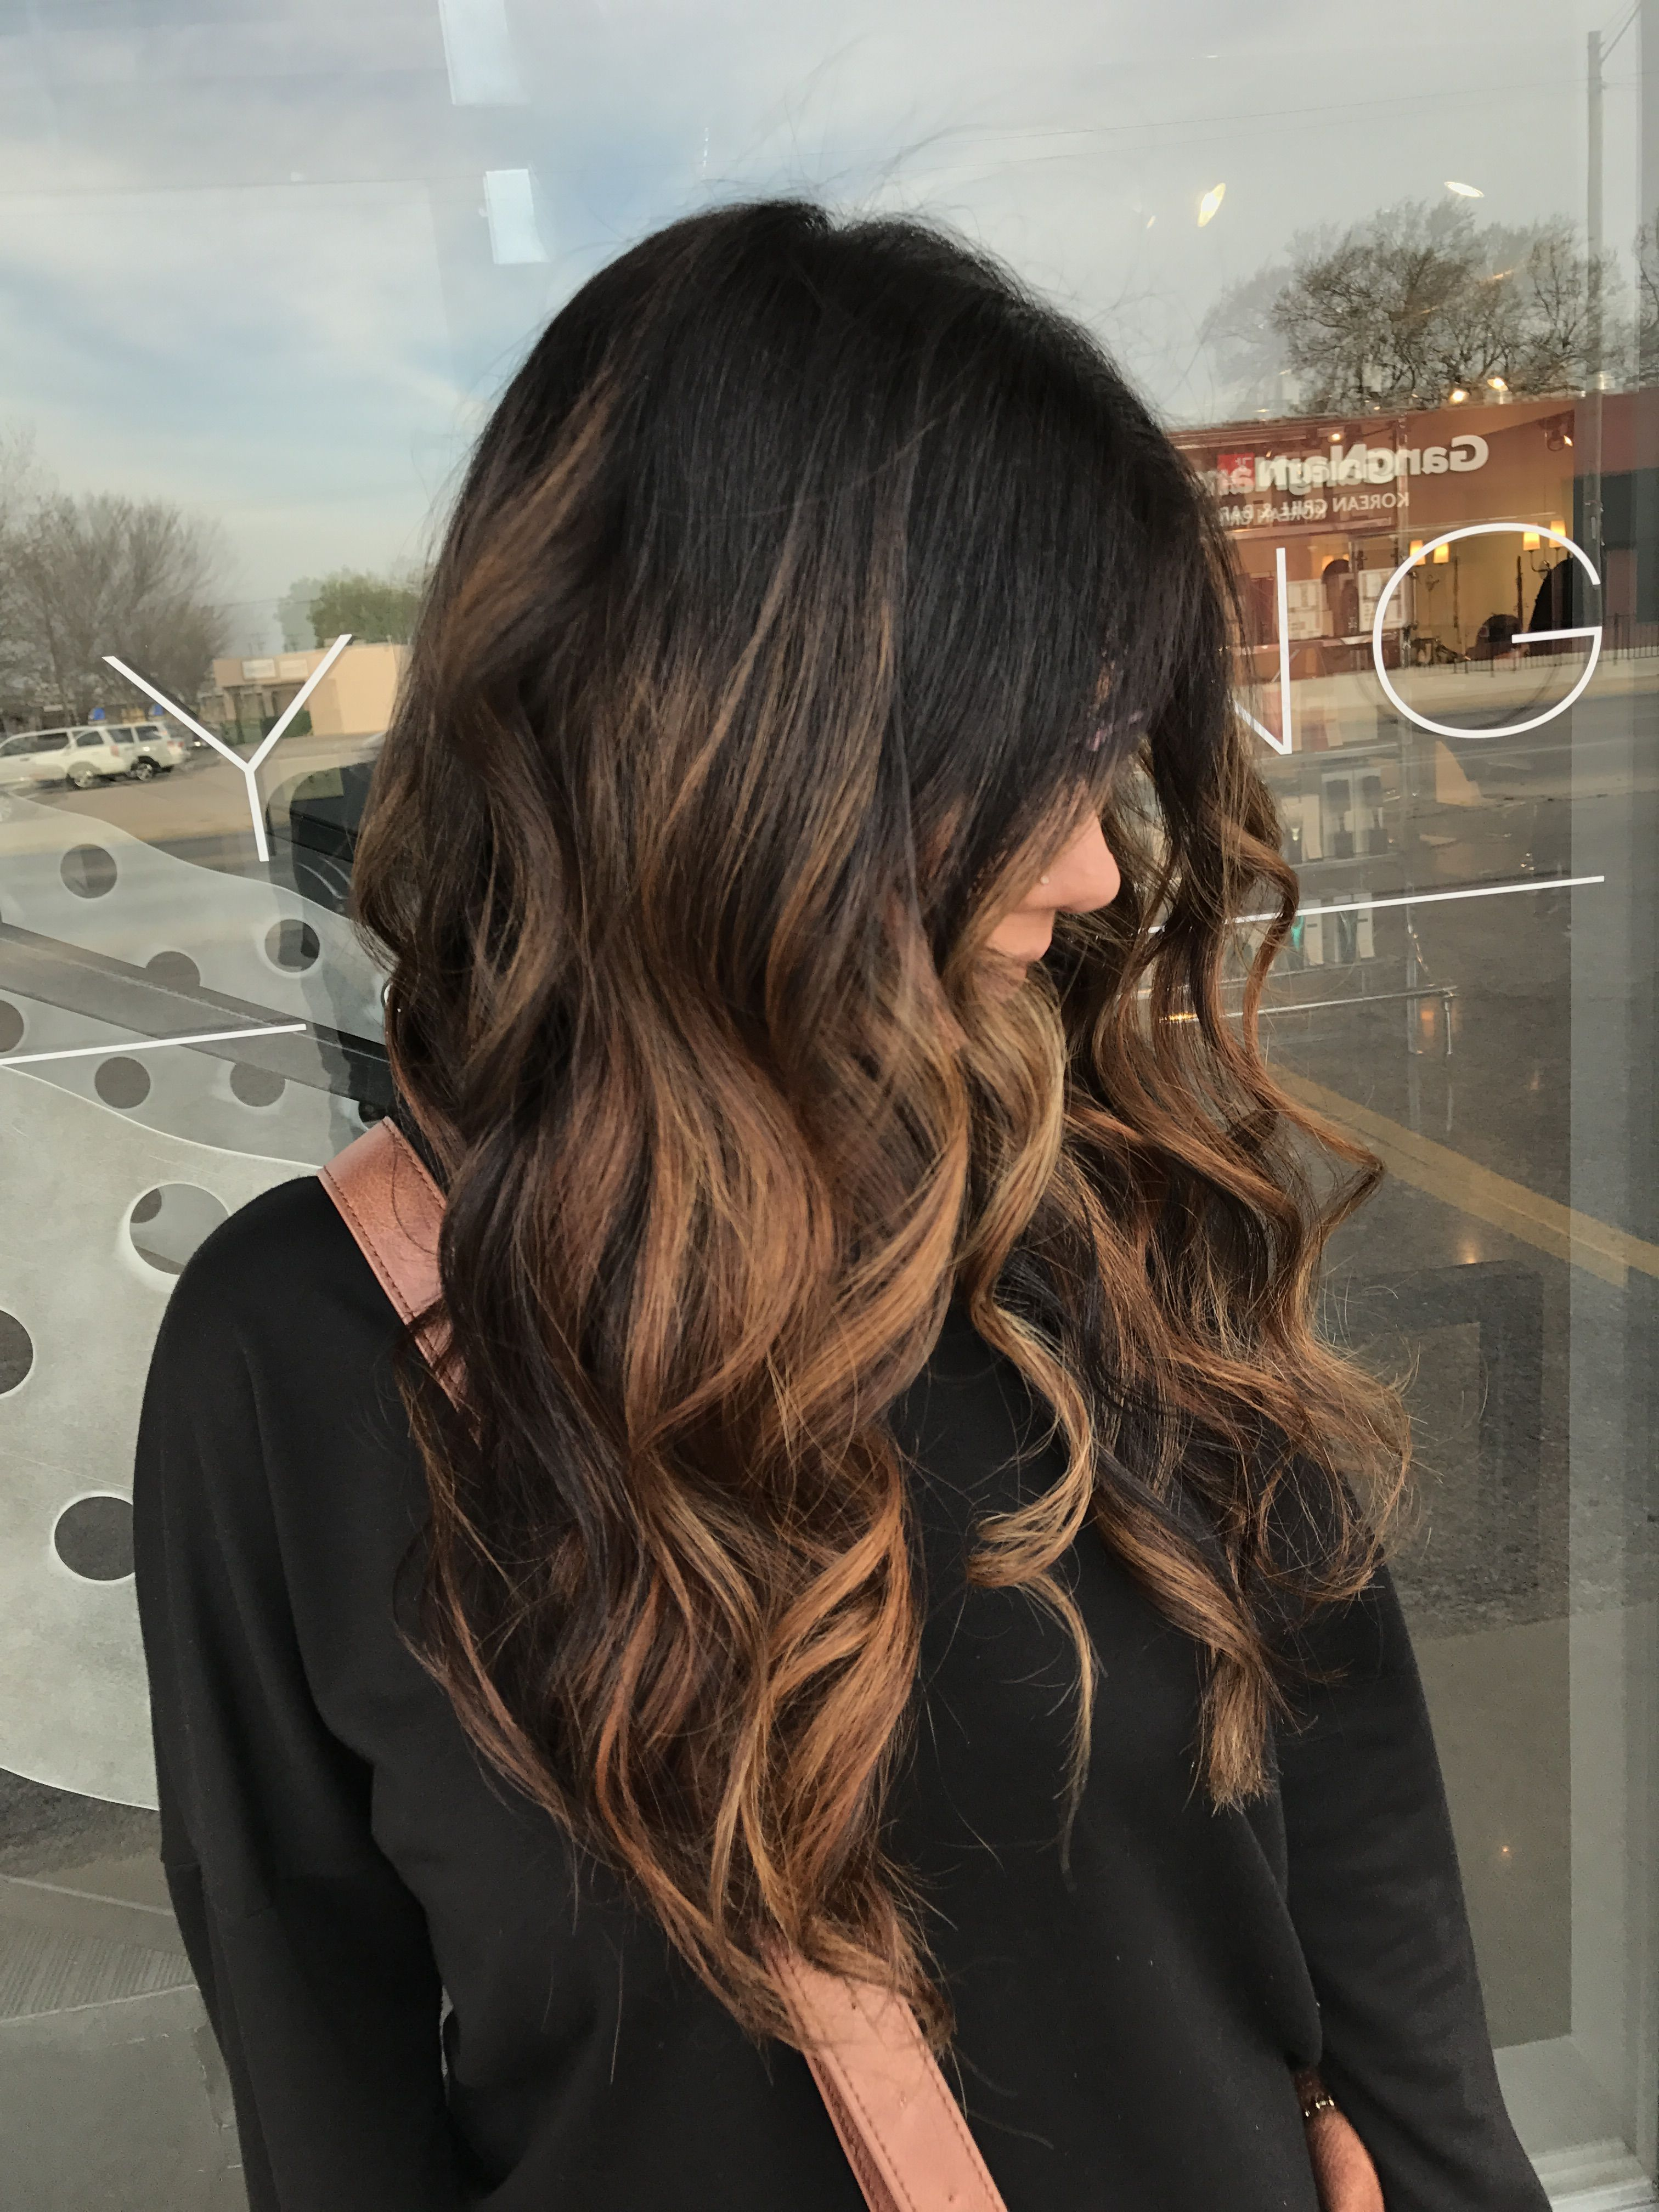 Balayage Hairstyle Inspiration Caramel Balayagelong Hair Balayagebalayage On Dark Brown Hair